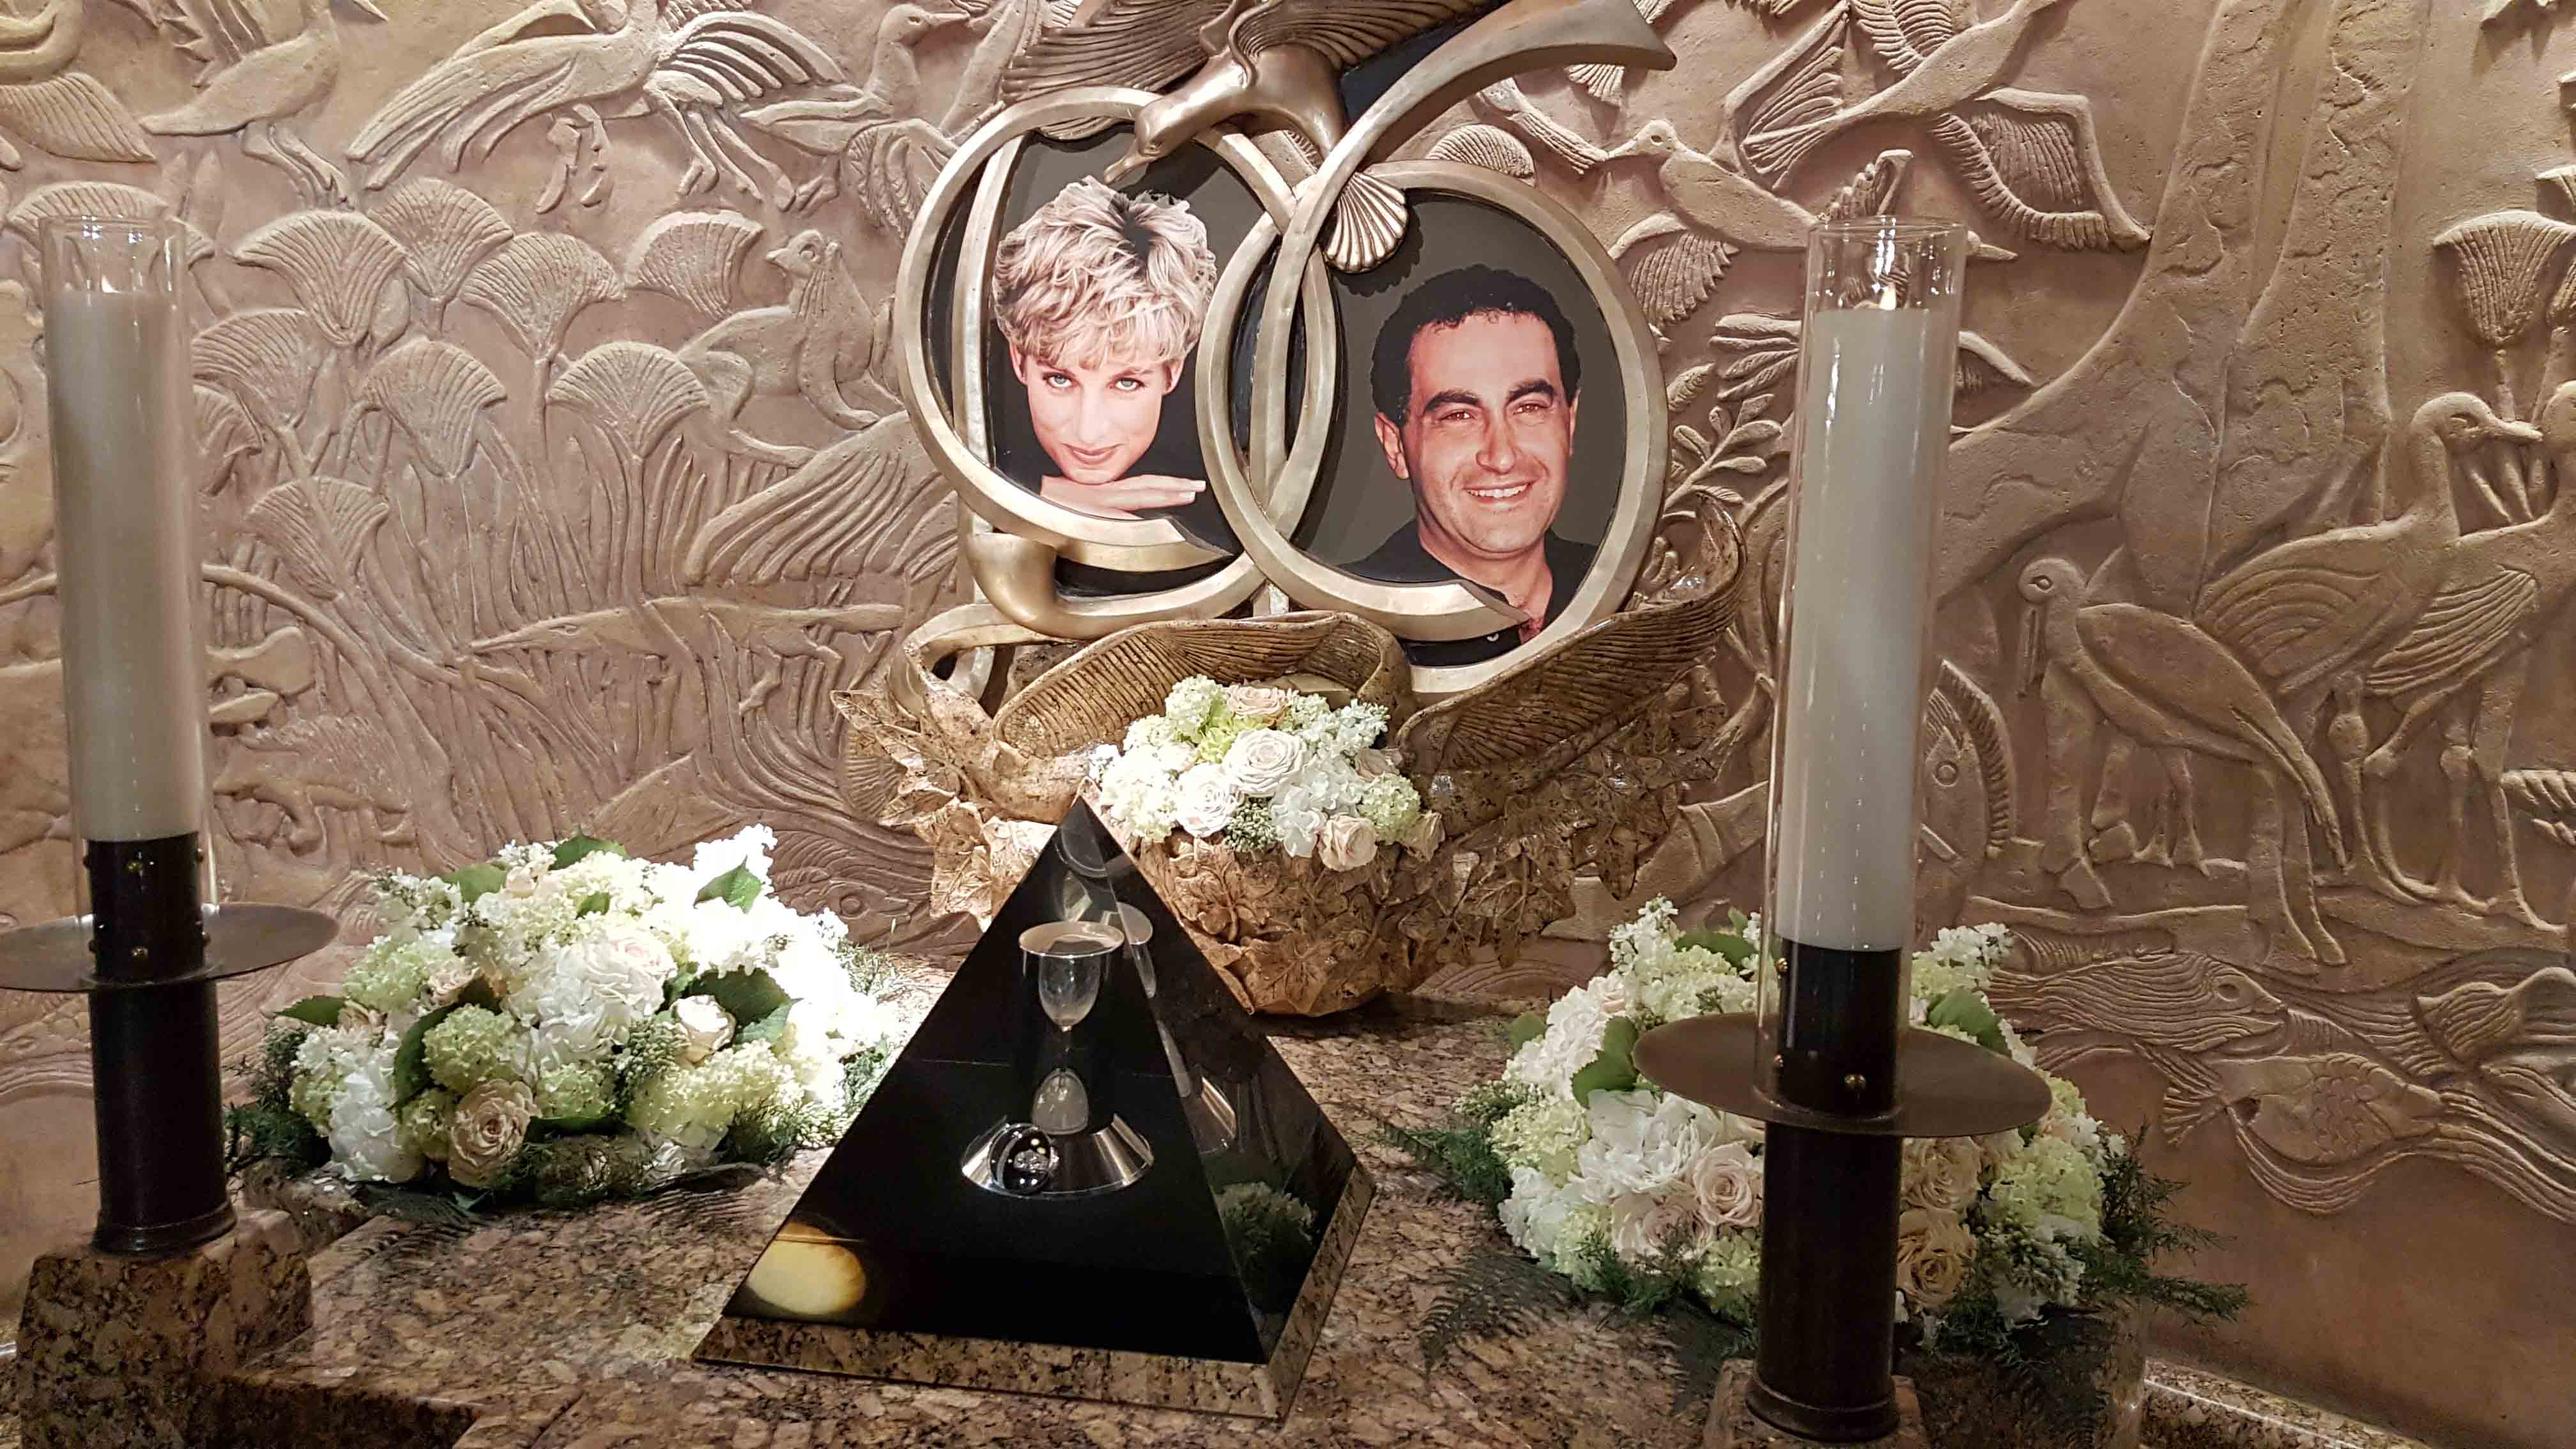 Bizarrices da Harrods - memorial da Princesa Daiana e Doddi Fayed